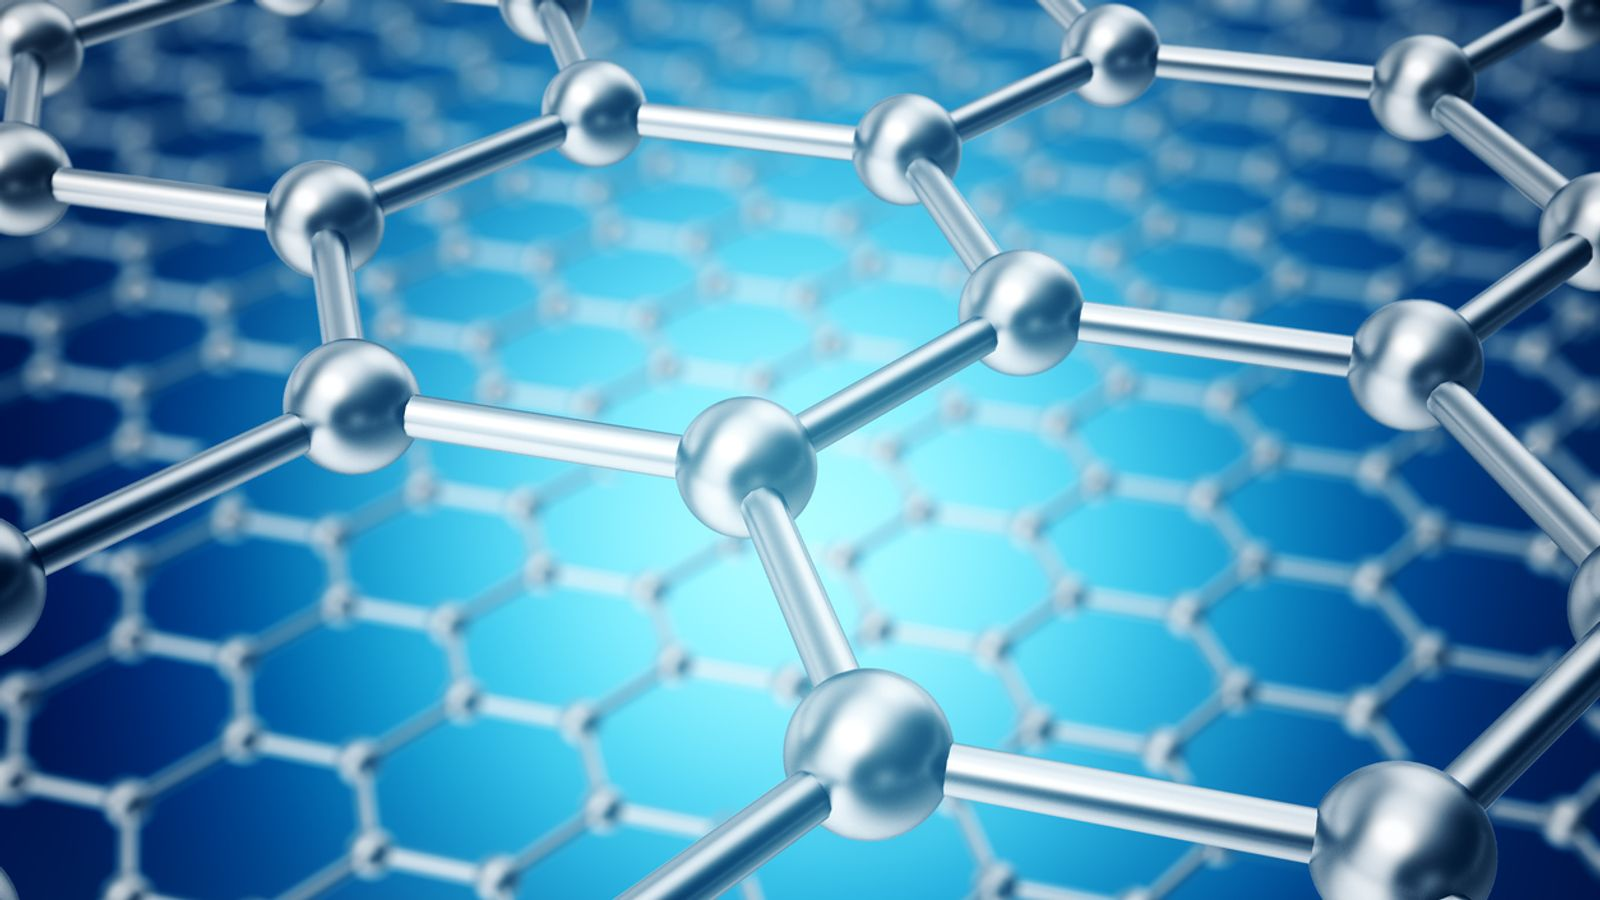 Created At 2017 04 05 0219 S10 Wiring Diagram Lighting Http Wwwdiychatroomcom F18 Scientists Create Graphene Sieve To Turn Seawater Into Drinking Water